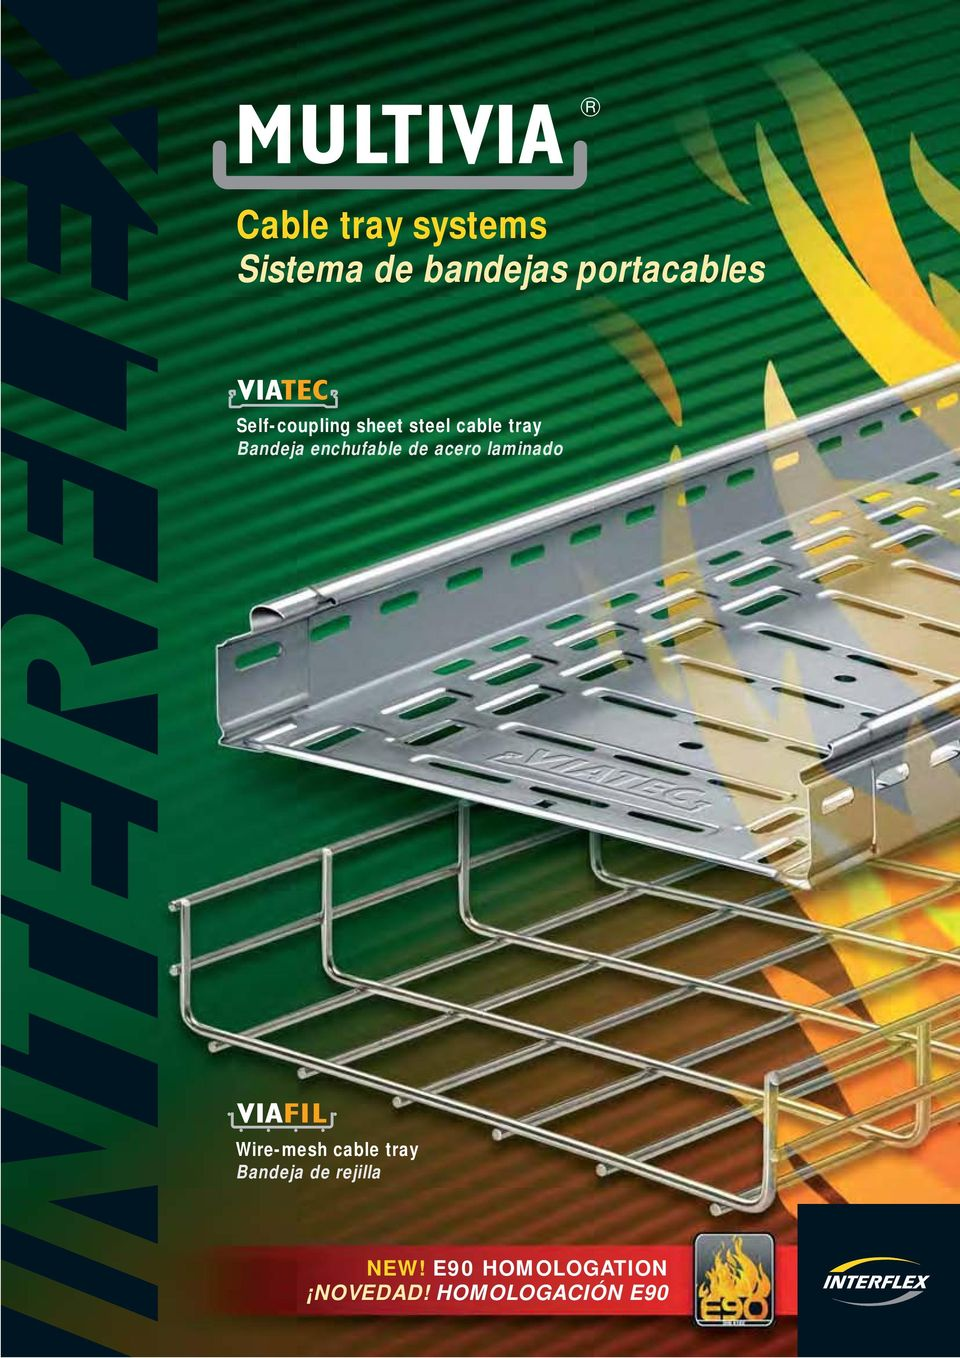 enchfable de acero laminado Wire-mesh cable tray